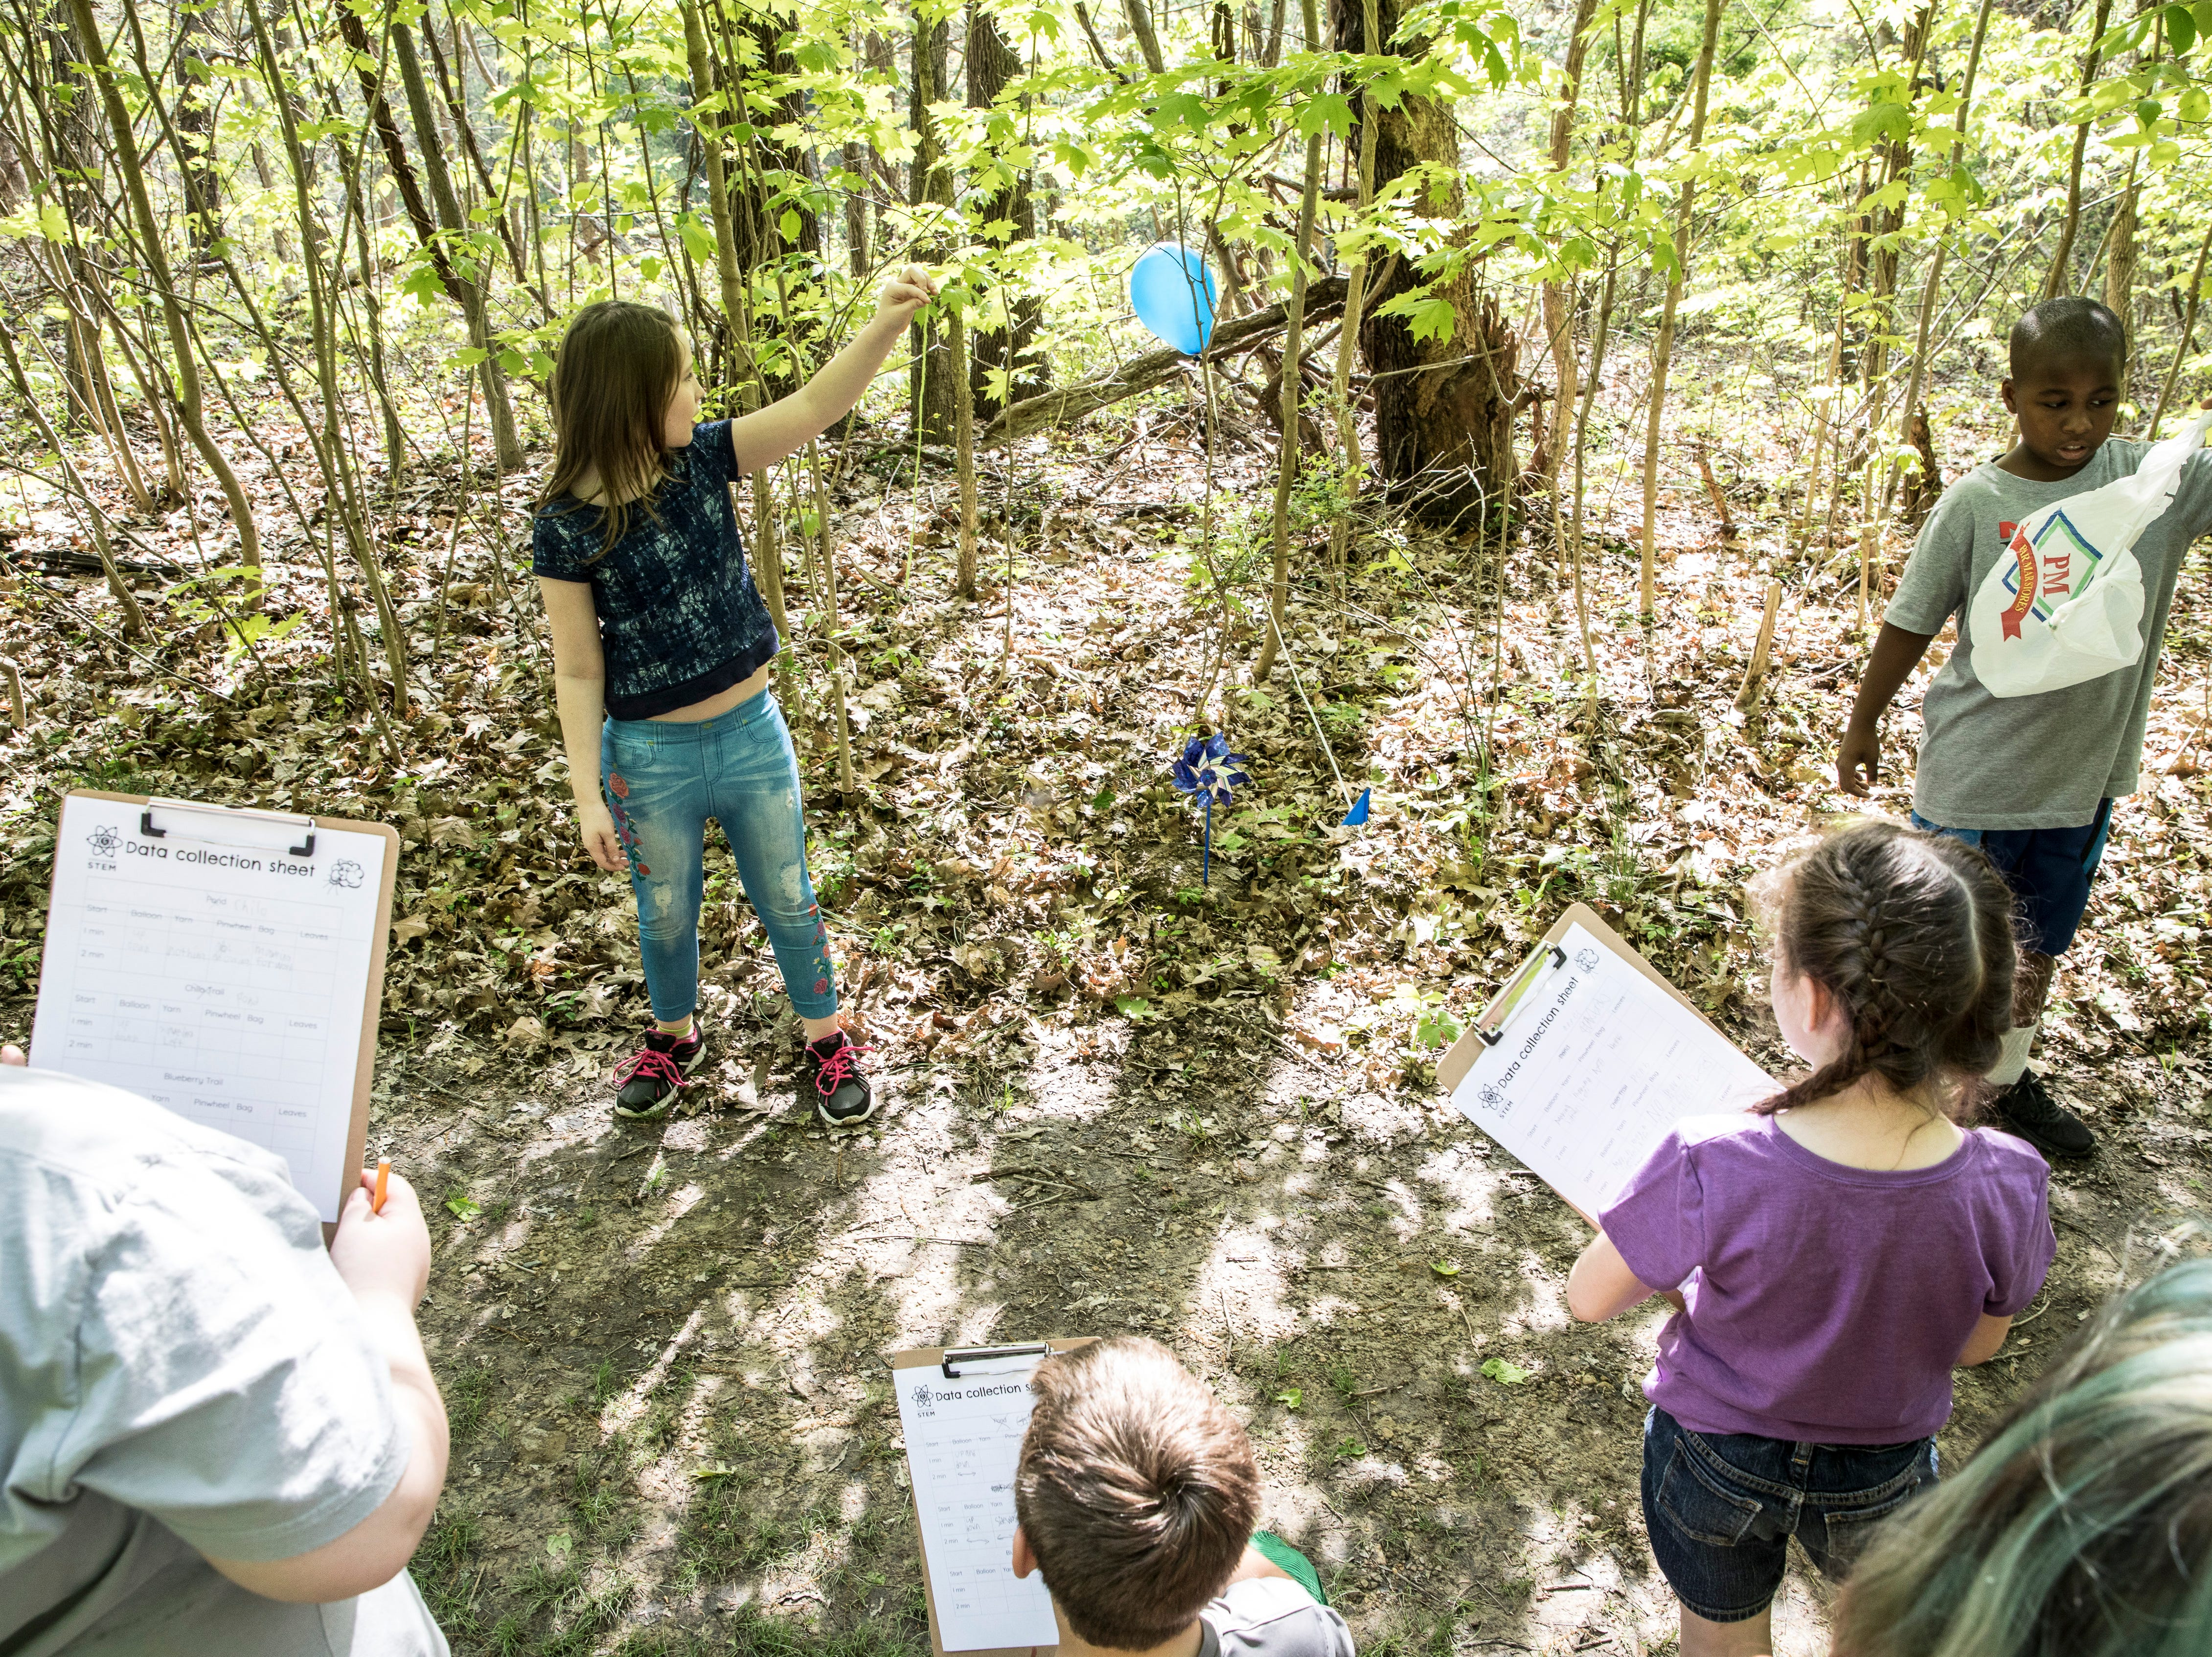 Noelle Eblin, left, and Armani Netter, right, hold up common household objects to see how they will react to the wind while other students write down what they see during a STEM outing at Buzzards Roost Nature Preserve on Wednesday, May 1, 2019.